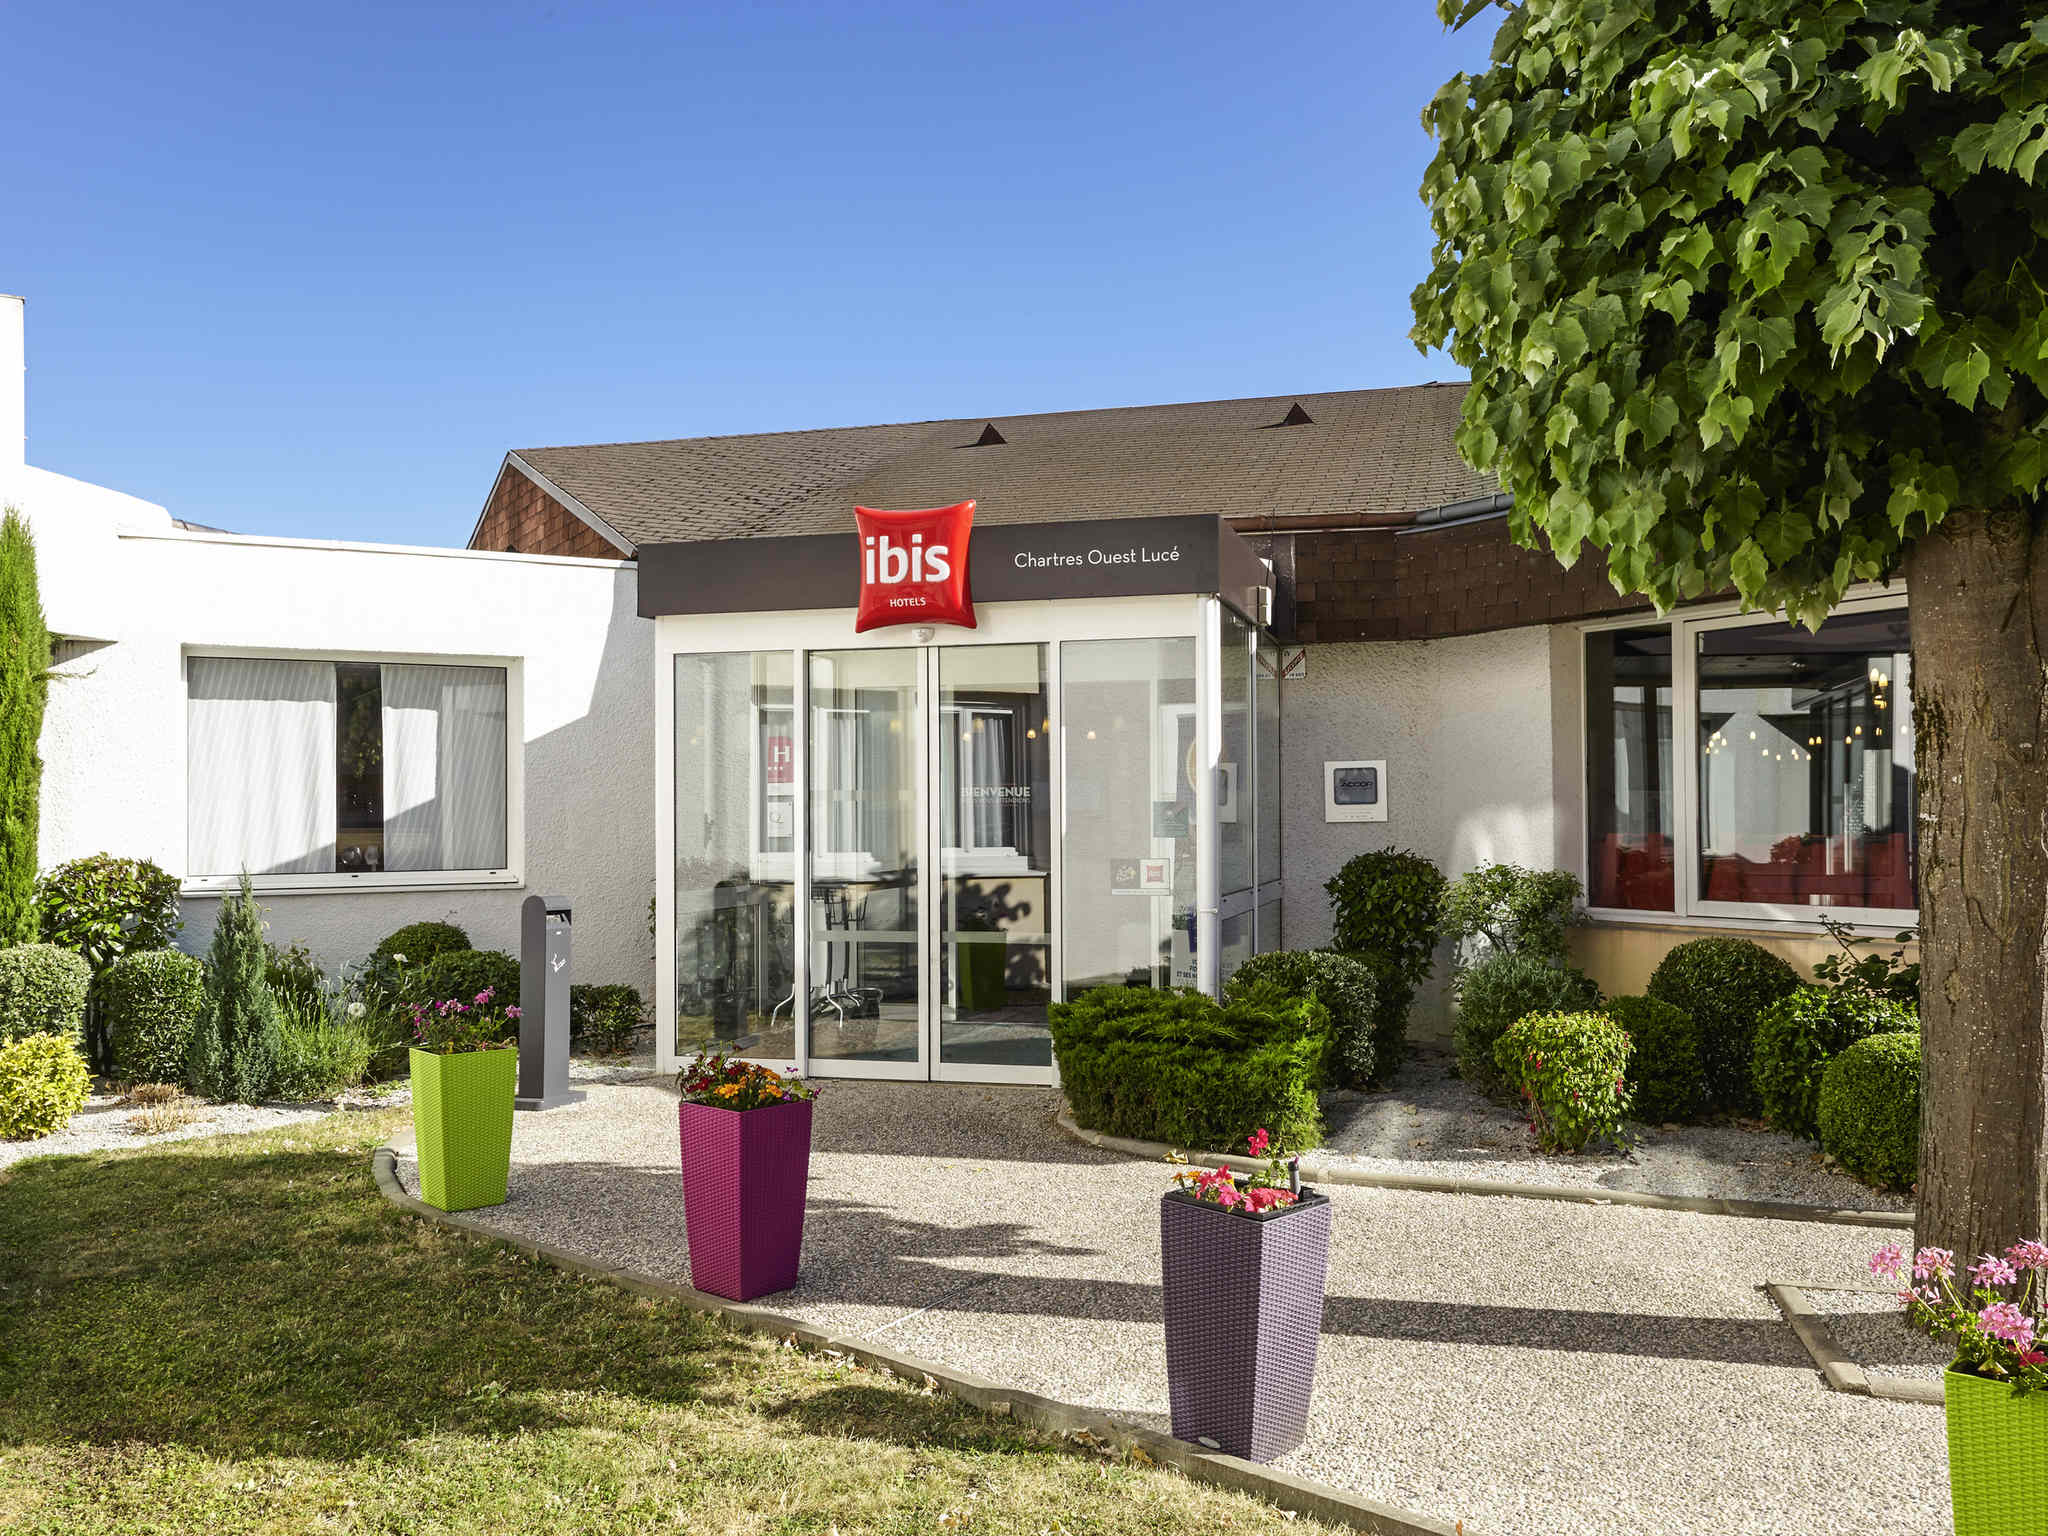 Hotell – ibis Chartres Ouest Lucé